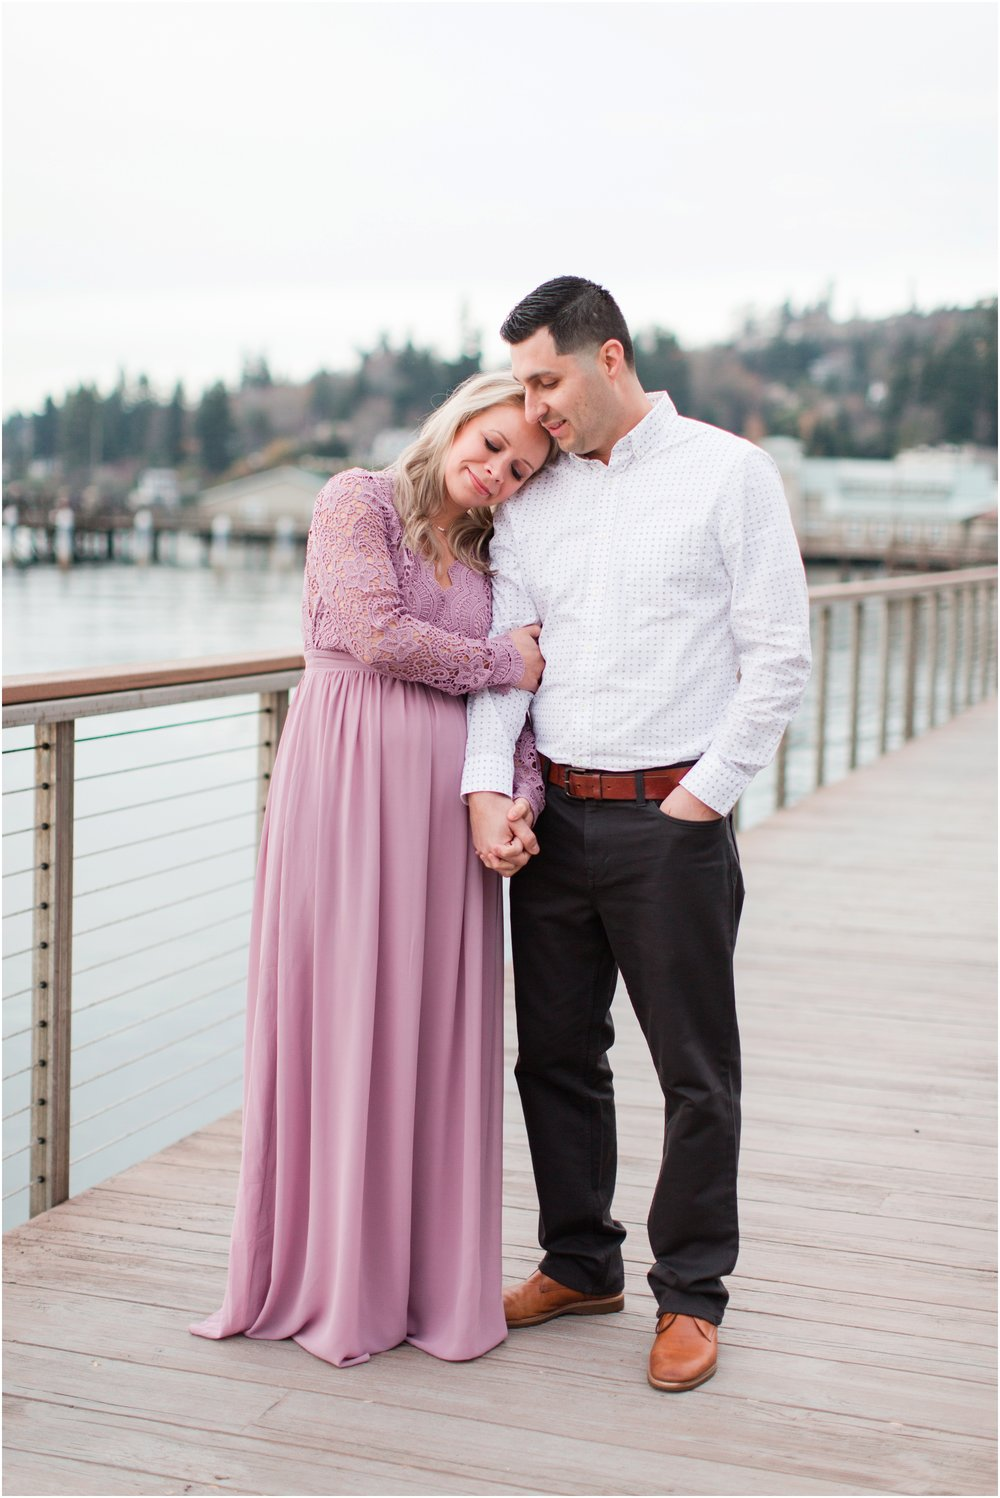 Maternity photos by Briana Calderon Photography based in the Greater Seattle & Tacoma, WA_0995.jpg